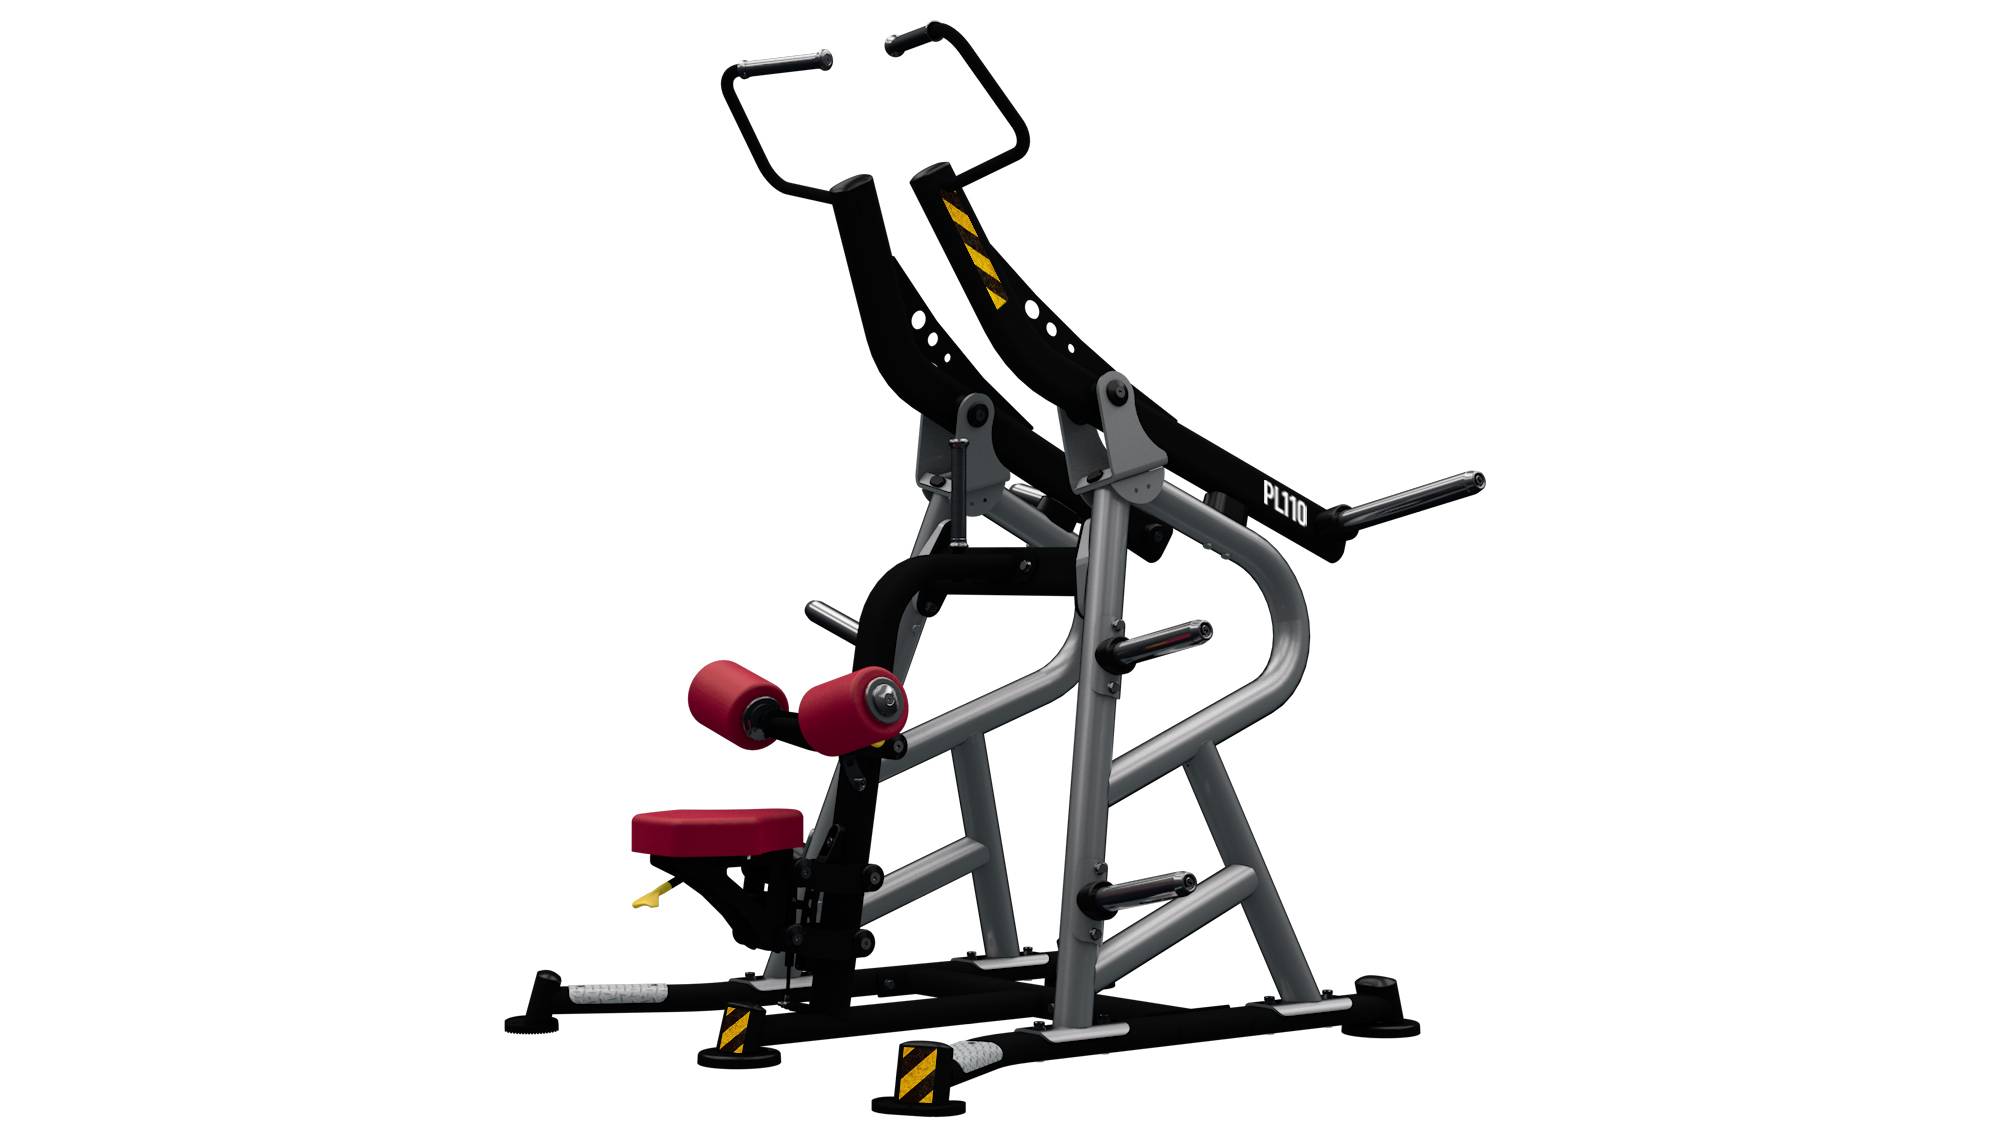 Pl110 Lat Pully By Bh Fitness